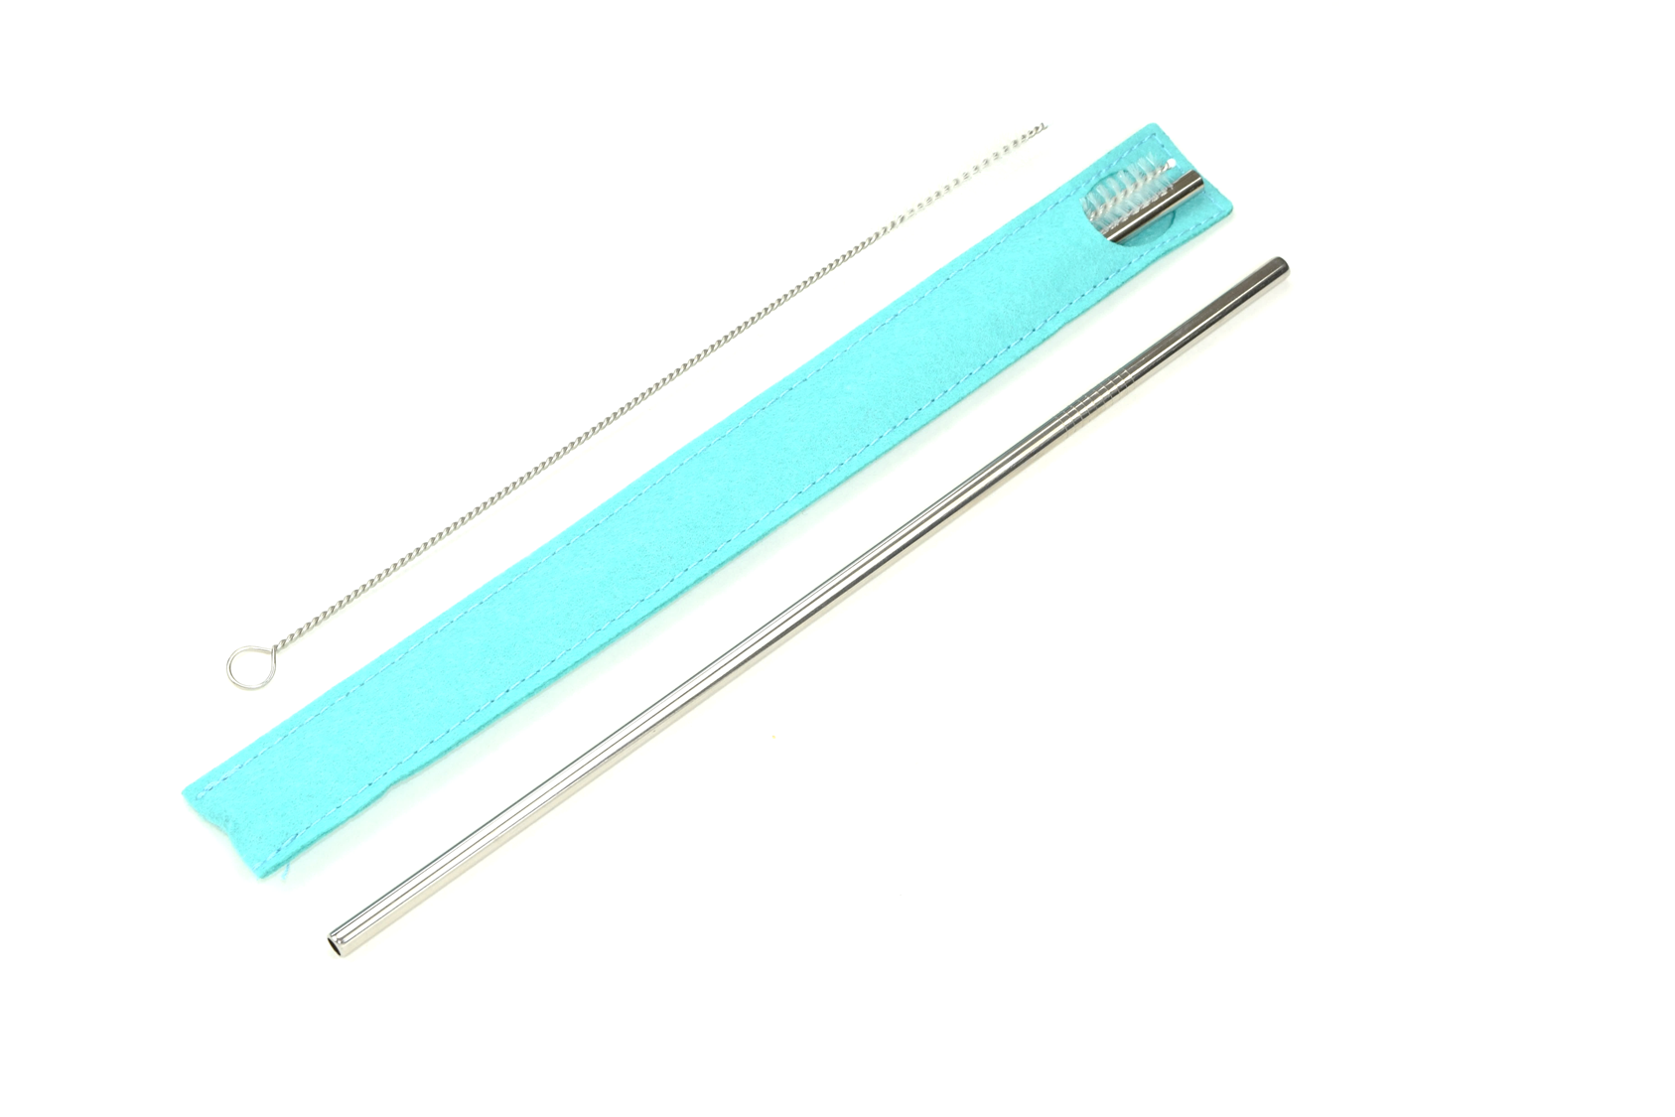 Single Stainless Steel Straw in a Turquoise Case : Single Straw Collection